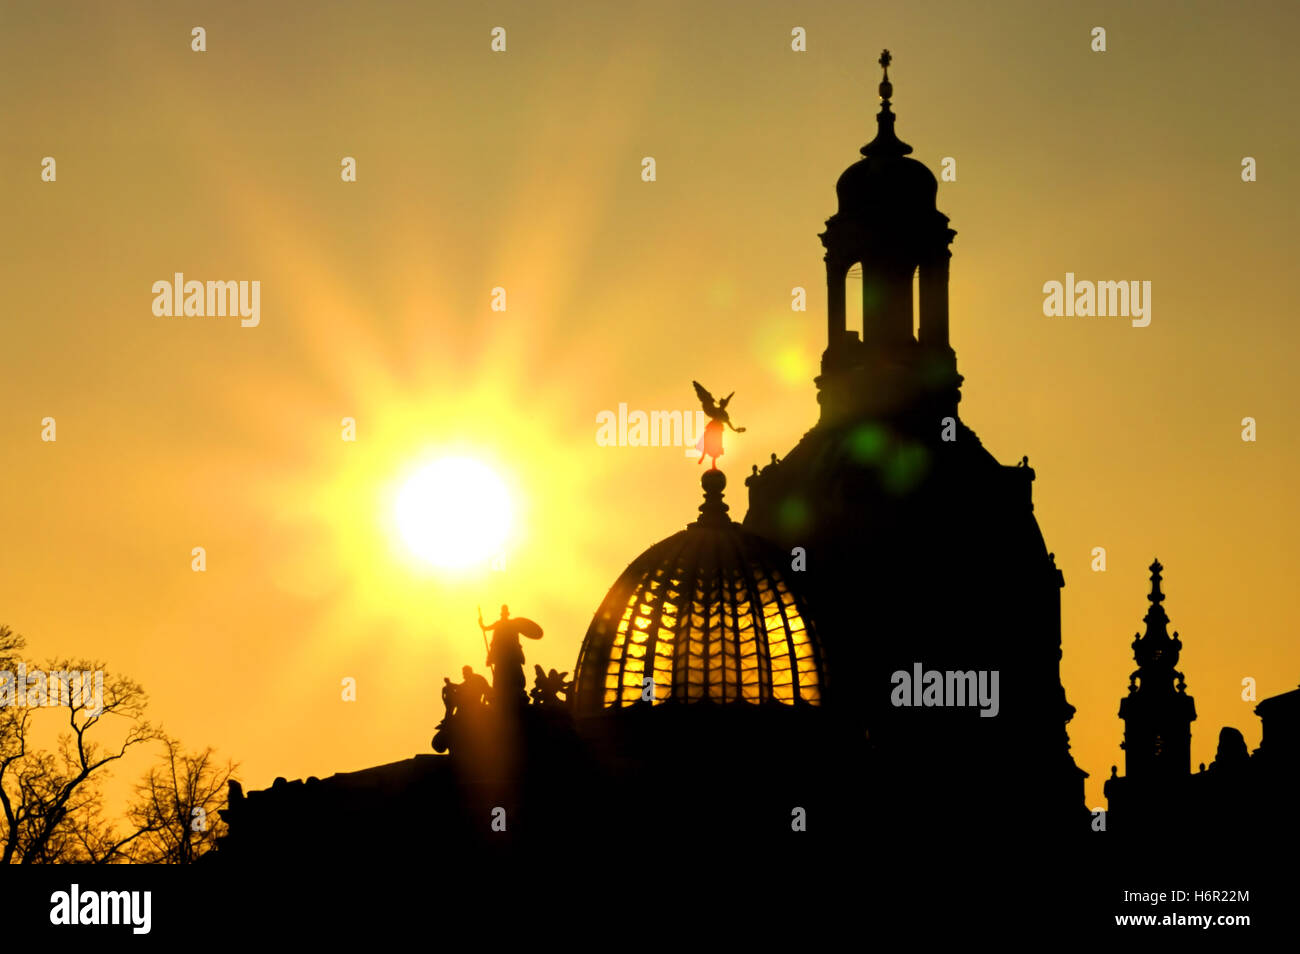 dresden frauenkirche nacht - dresden church of our lady by night 02 - Stock Image